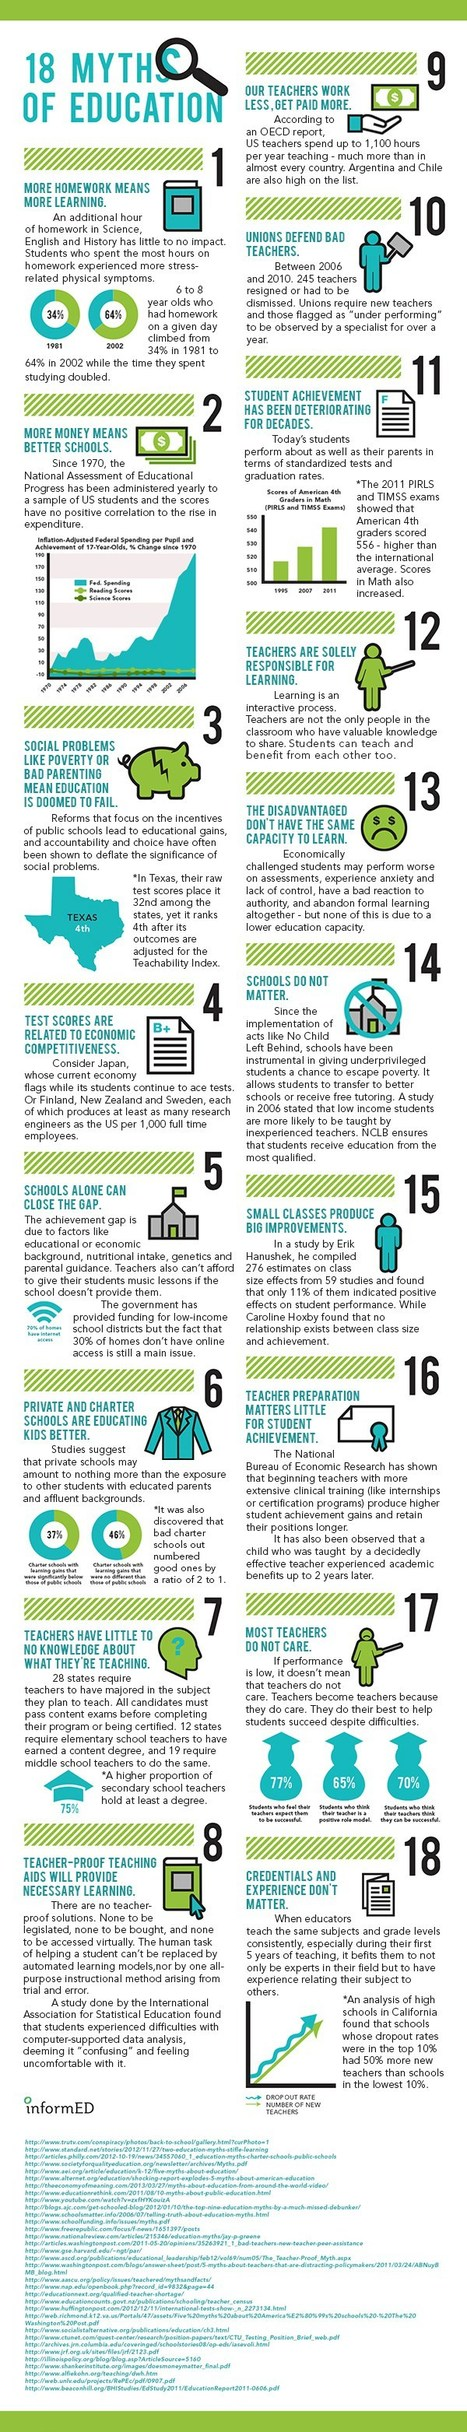 18 Myths of Education | Soup for thought | Scoop.it